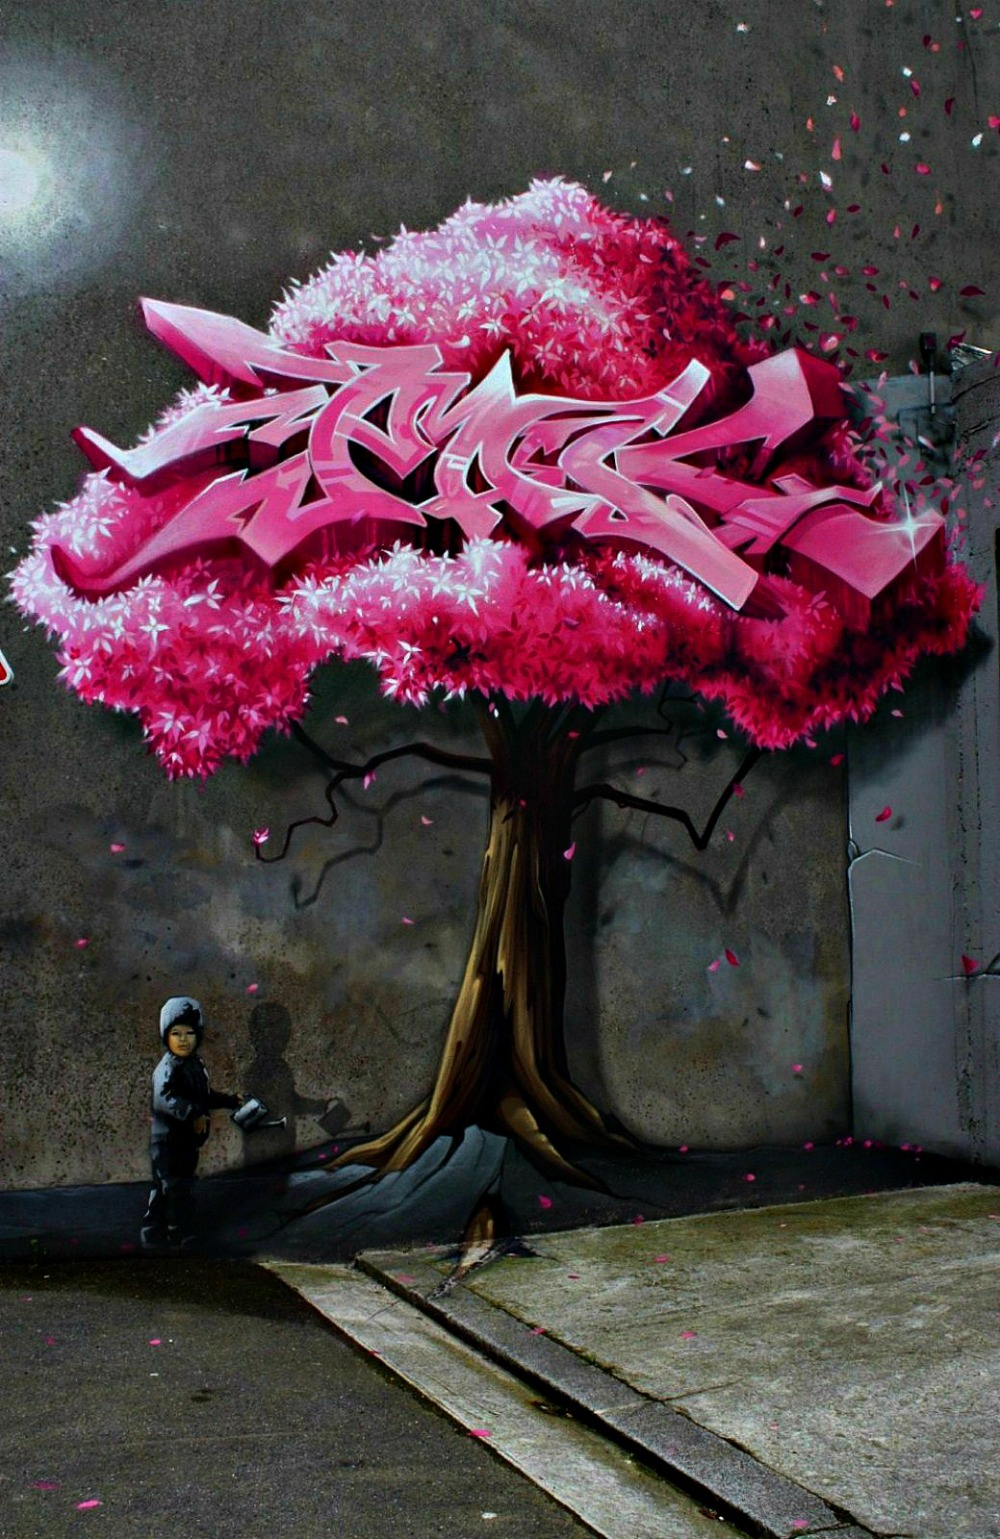 fresque, street art, tag, arbre rose,